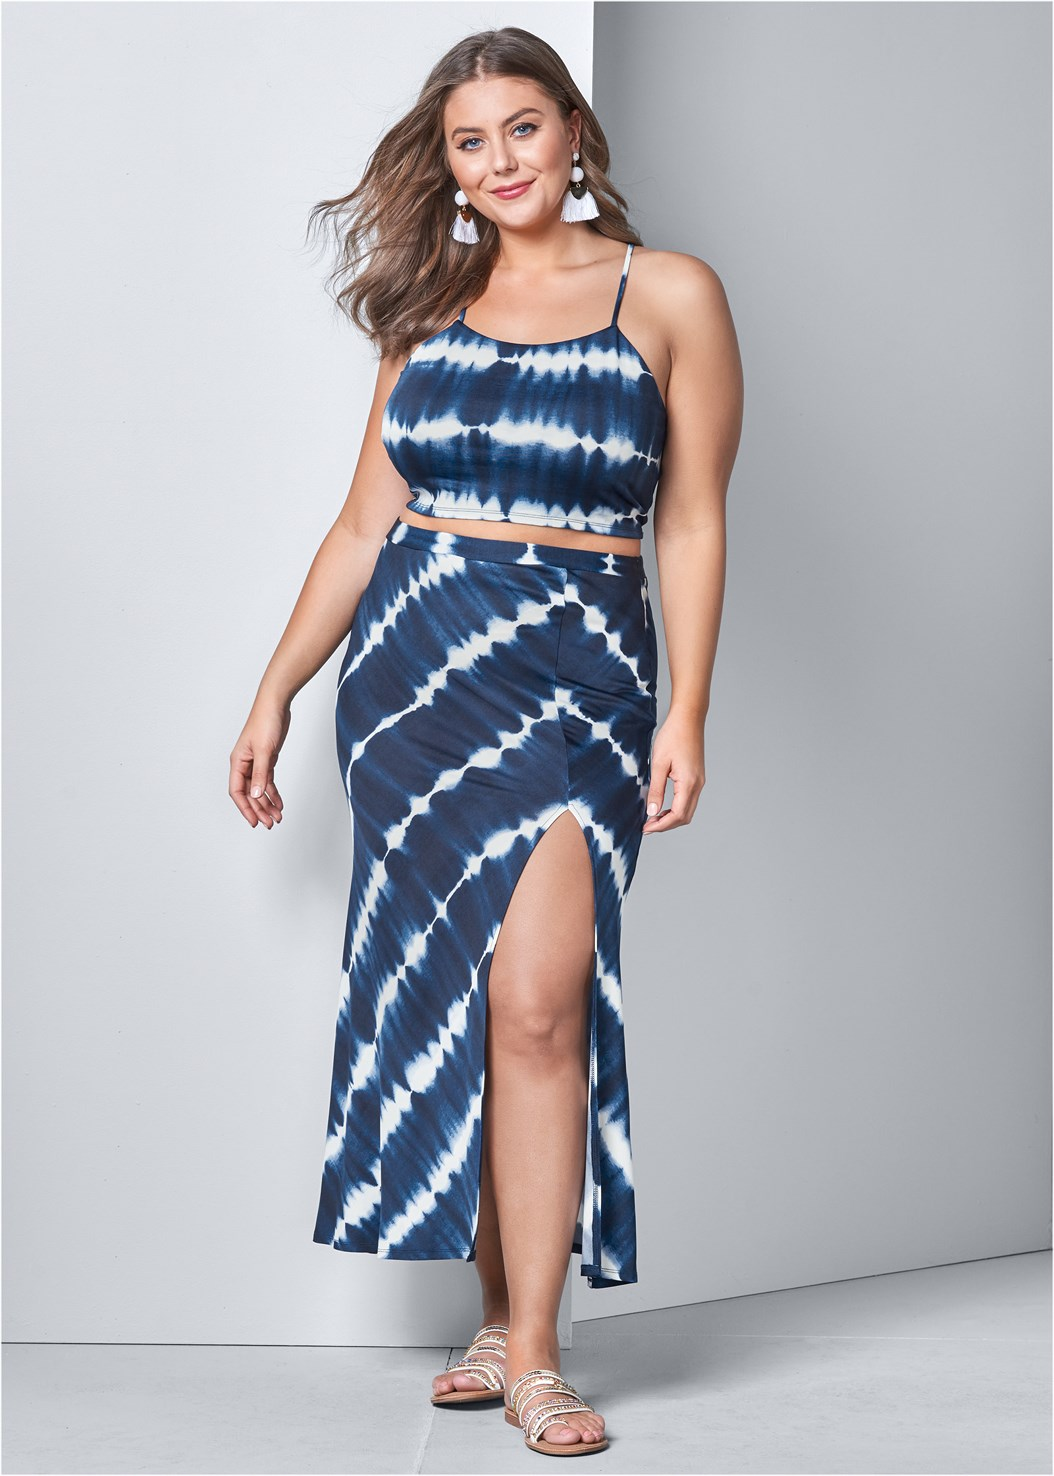 Tie Dye Two Piece Set,Strappy Toe Ring Sandals,Fringe Drop Earrings